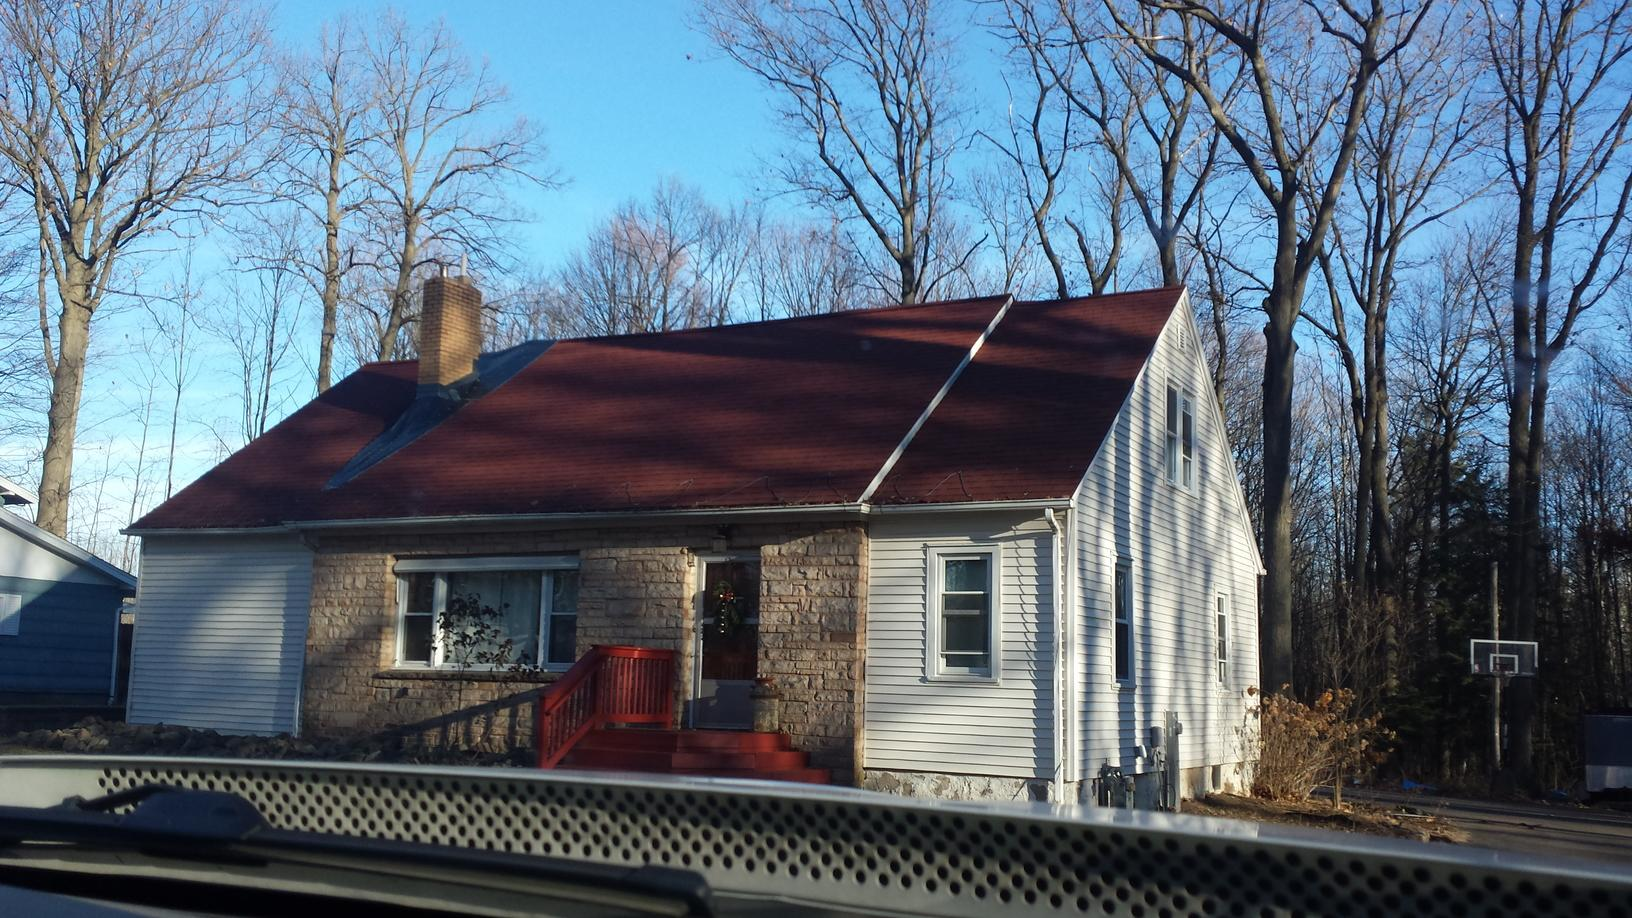 Wausau roof that was raised to provide proper ventilation - Before Photo